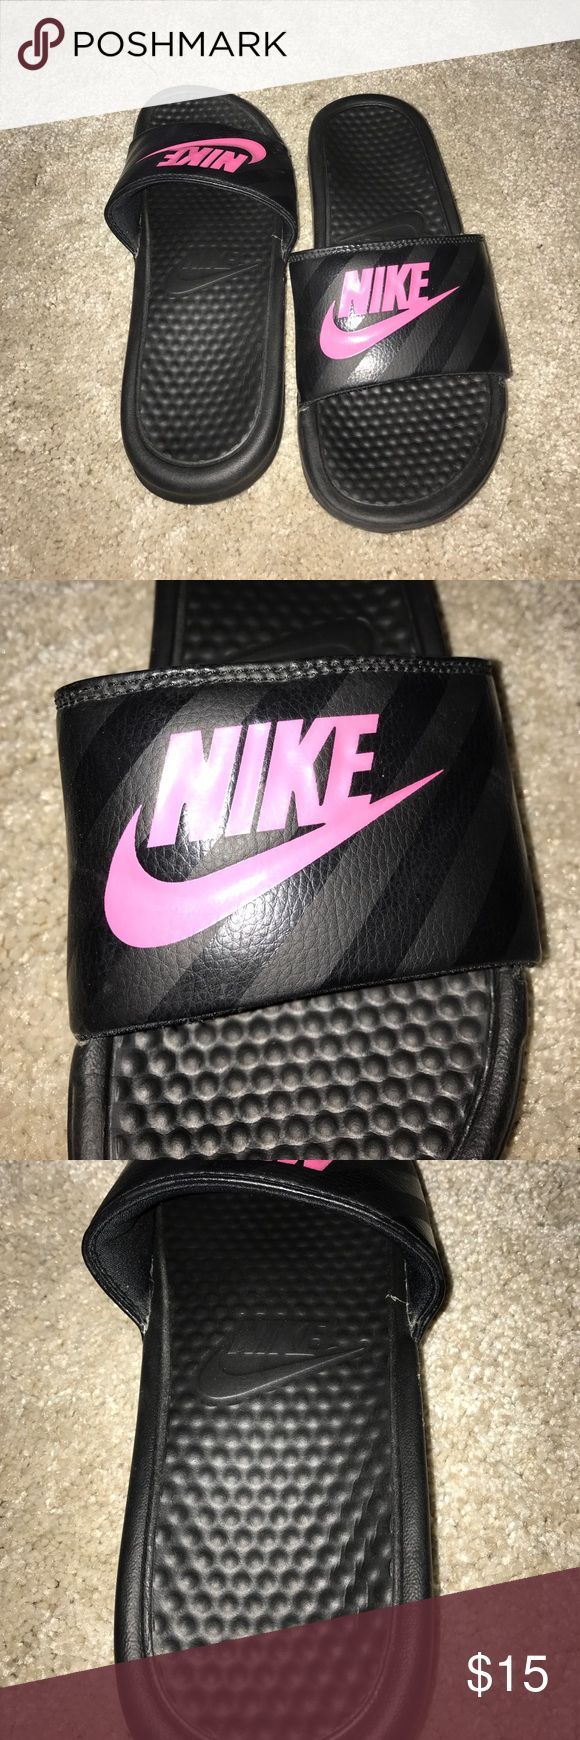 Nike slip on sandals, size 8 Nike slip on sandals, size 8, excellent condition, black with hot pink swoosh Nike Shoes Sandals